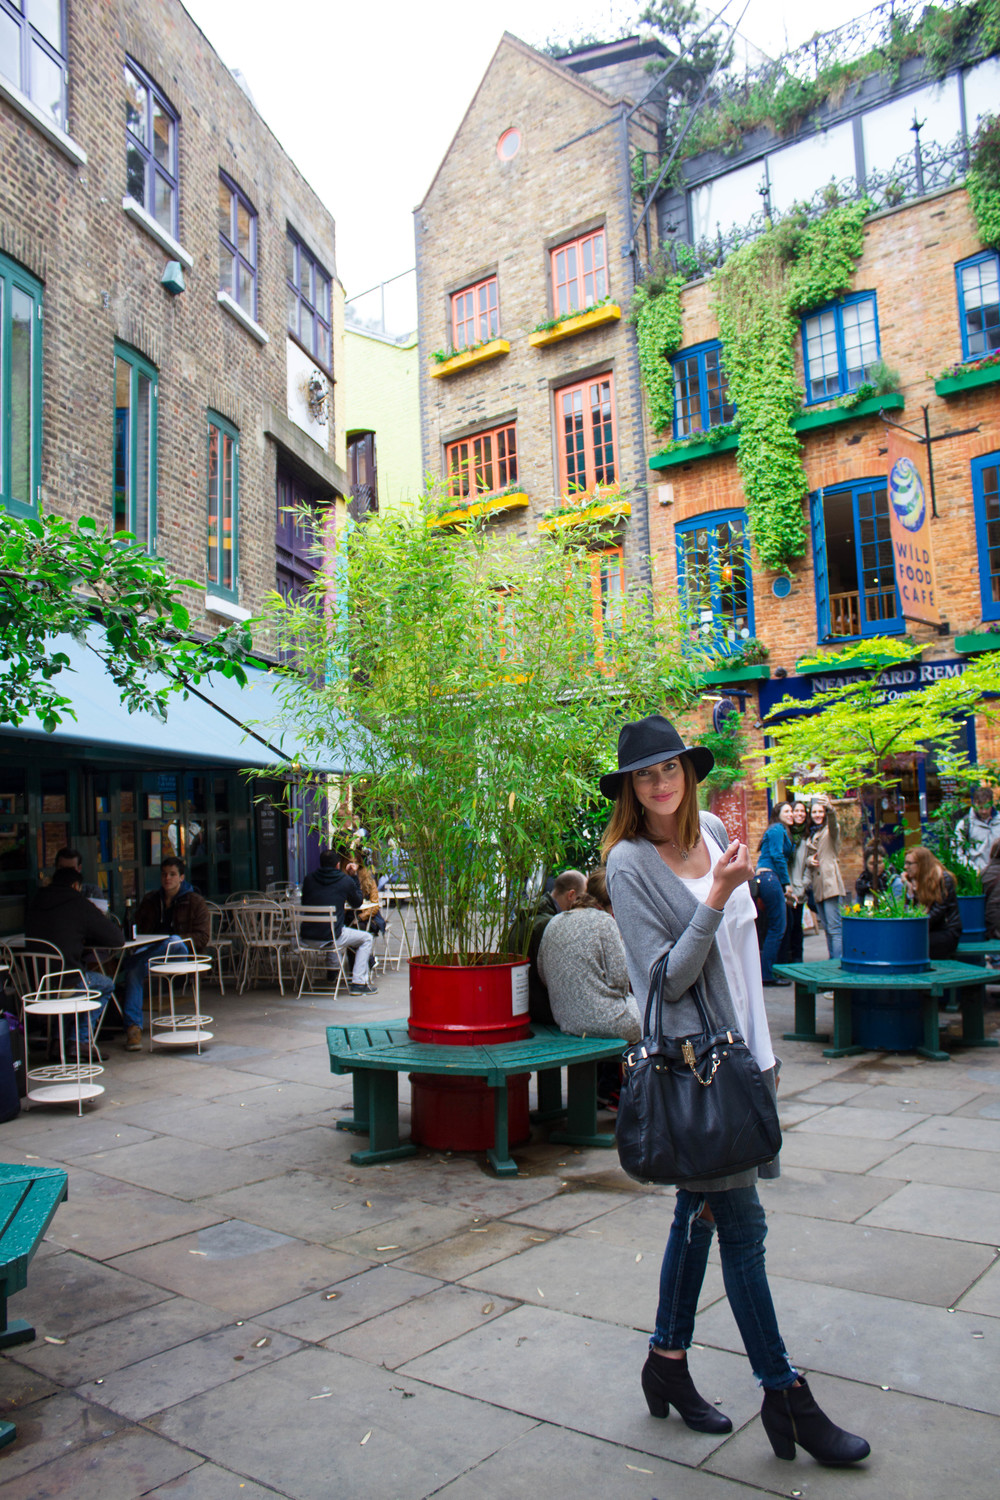 London Time - Neal's Yard at Covent Garden | Four Threads